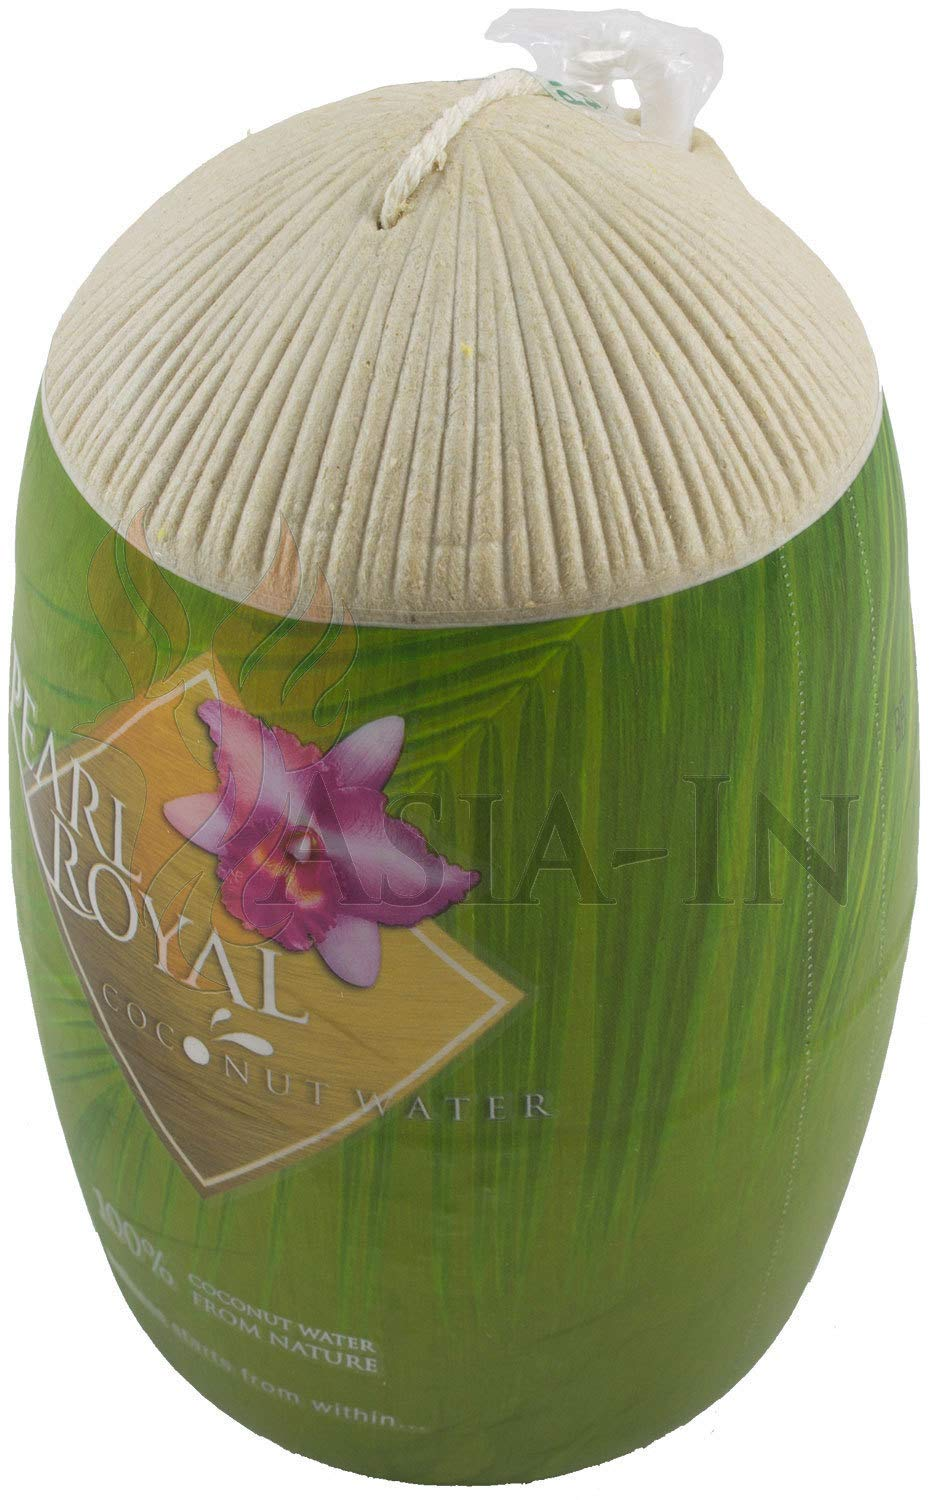 Pearl Royal Coconut Water Limited price sale 12 10.5 Pack oz by Animer and price revision